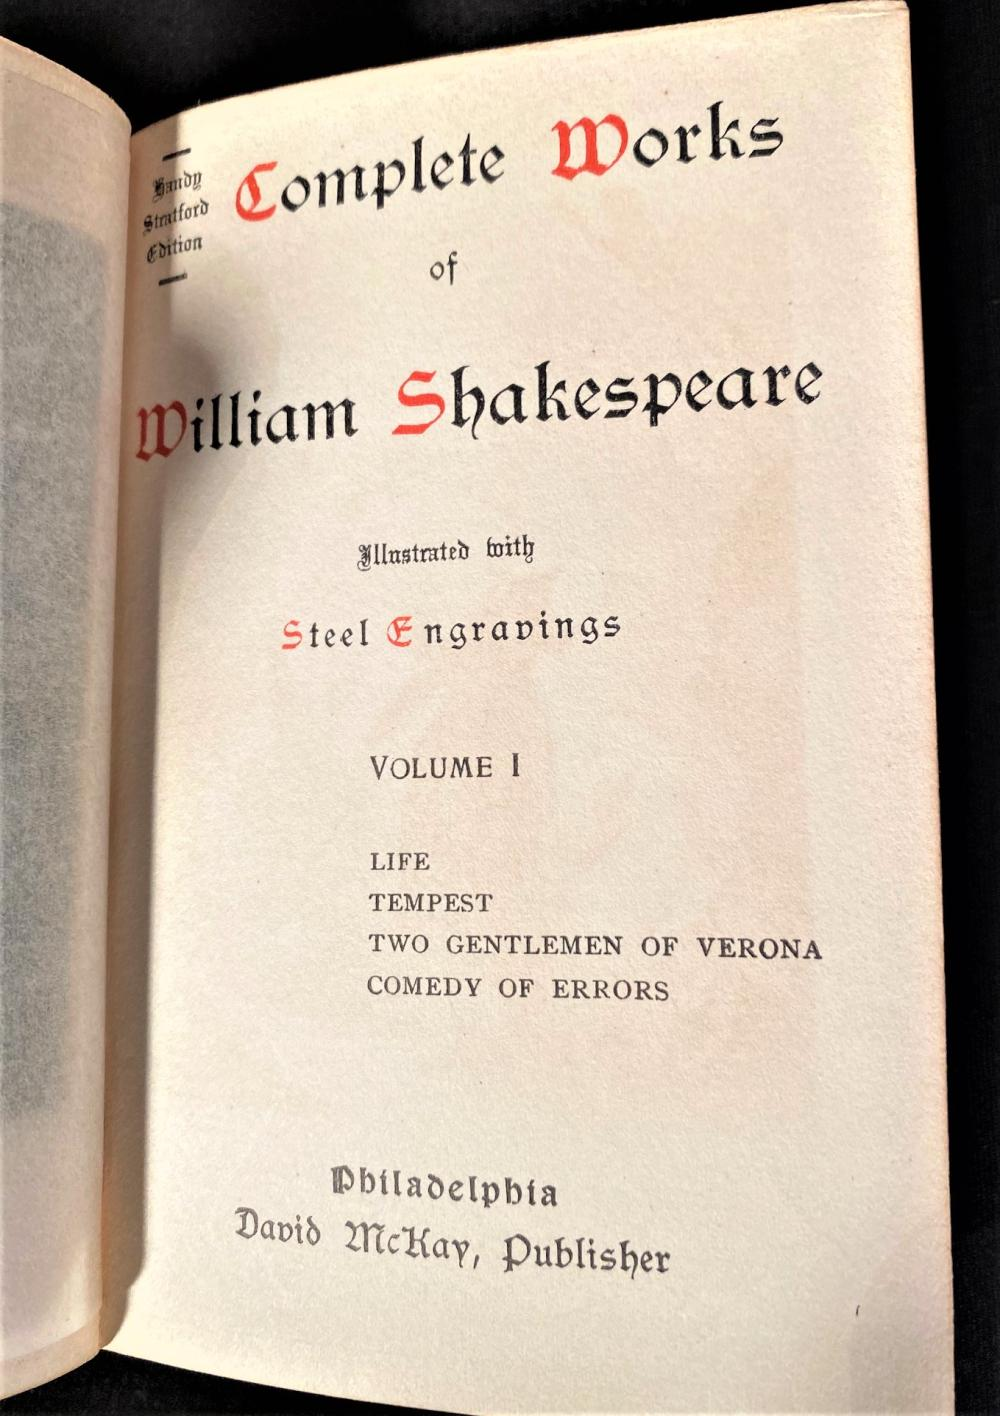 COMPLETE WORKS OF WILLIAM SHAKESPEARES - IN 13 VOLUMES - 1890s